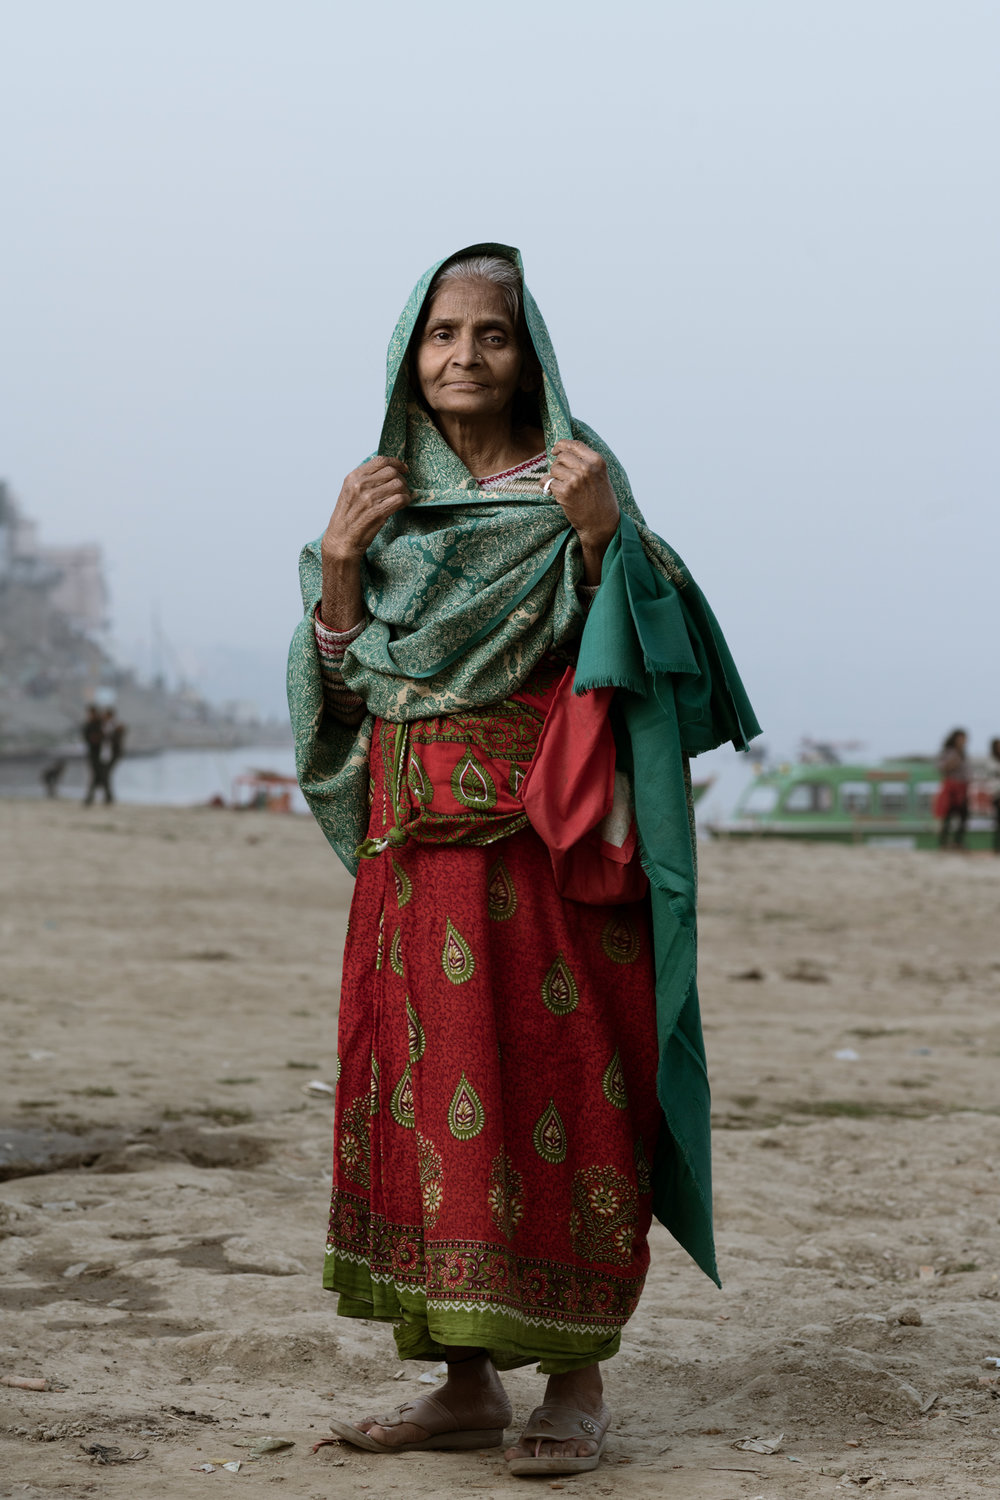 Varanasi_portrait_travel_photography_Manchester_Adventure_Photographer_Jan_Bella41.jpg